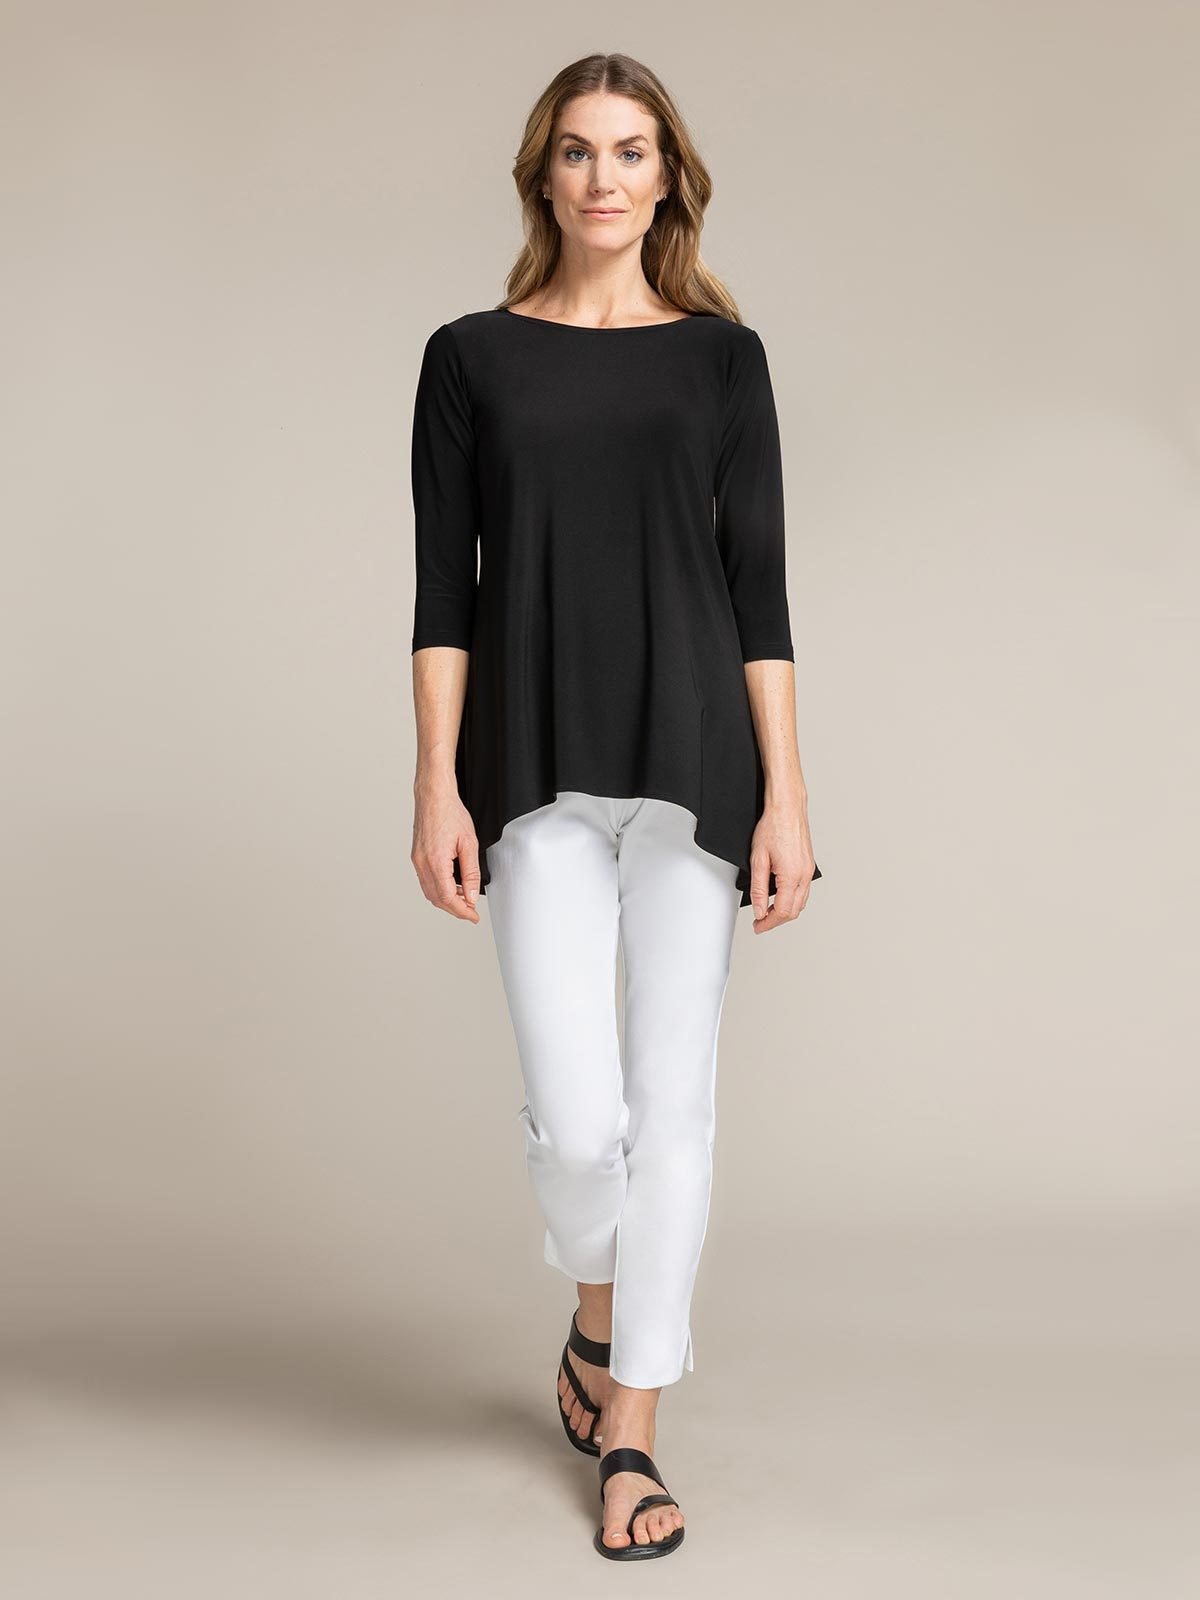 Sympli True T 3/4 Sleeve - Black - Statement Boutique